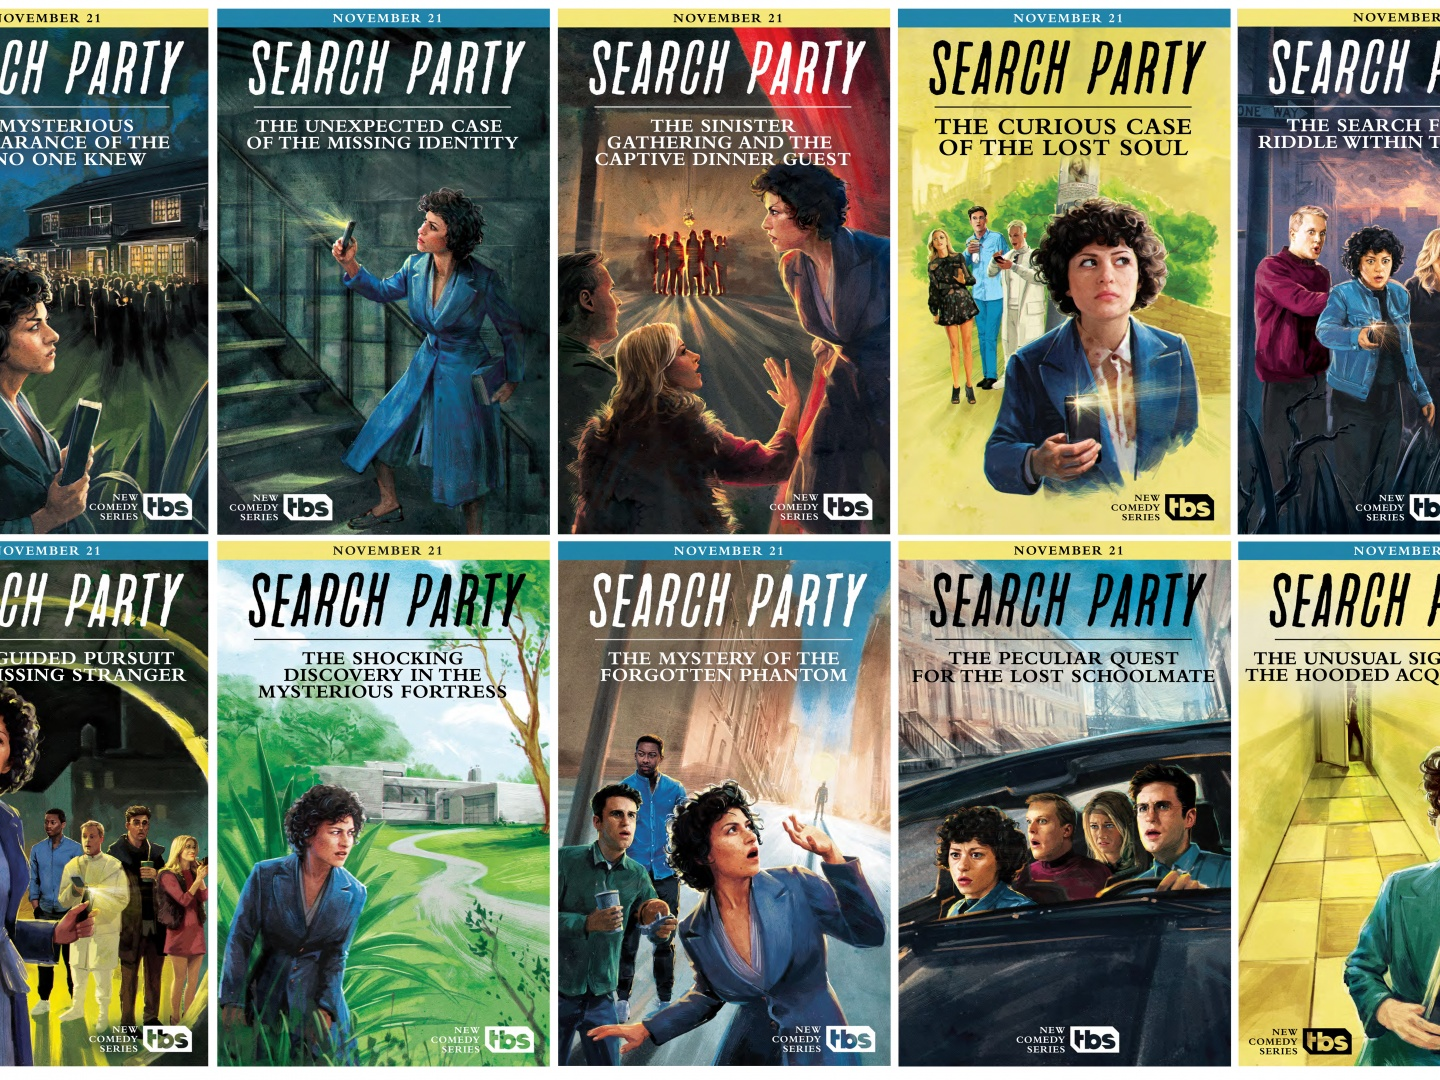 Search Party: S1 Posters Thumbnail